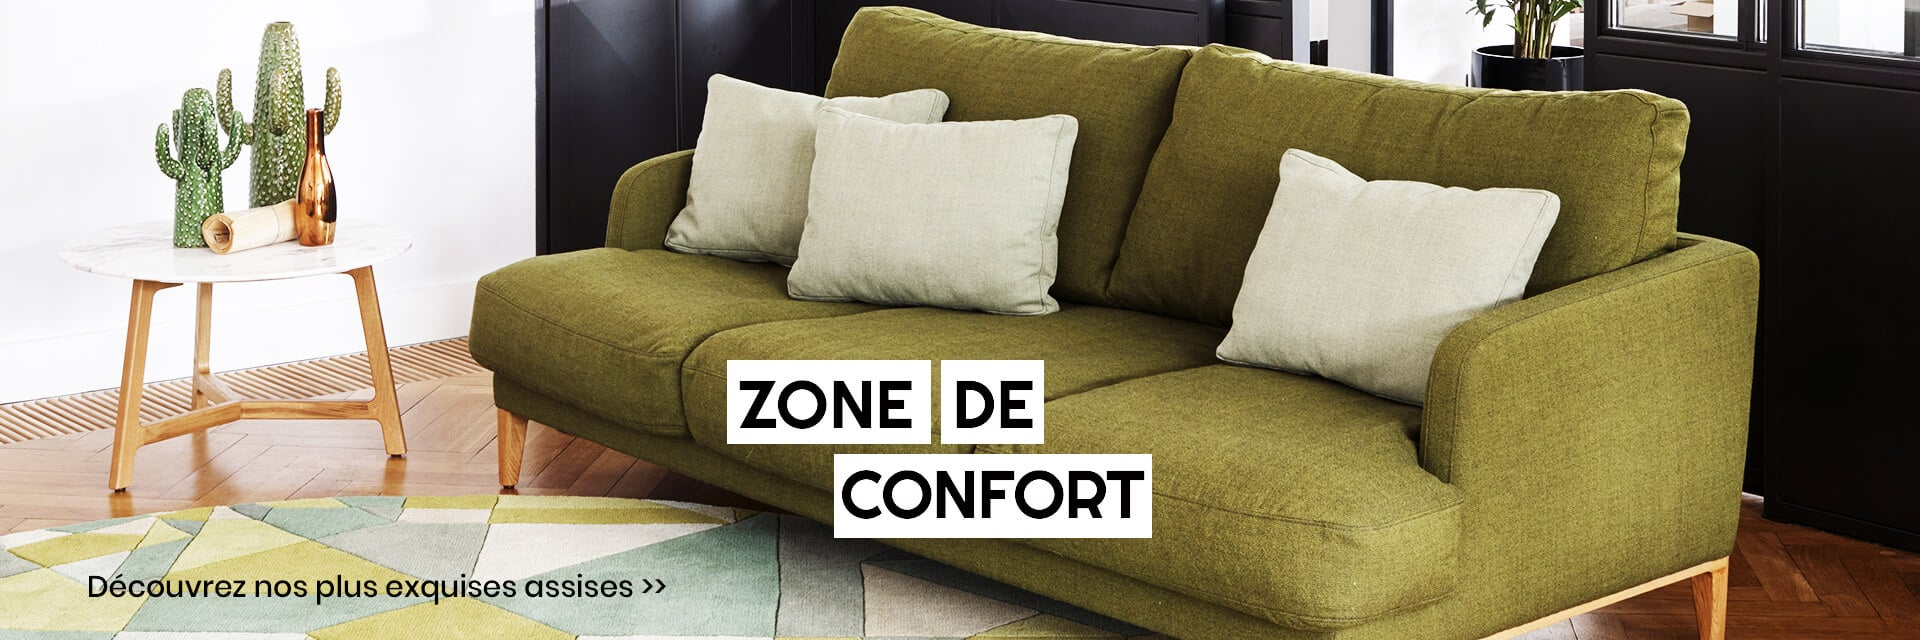 zone de confort home page zeeloft